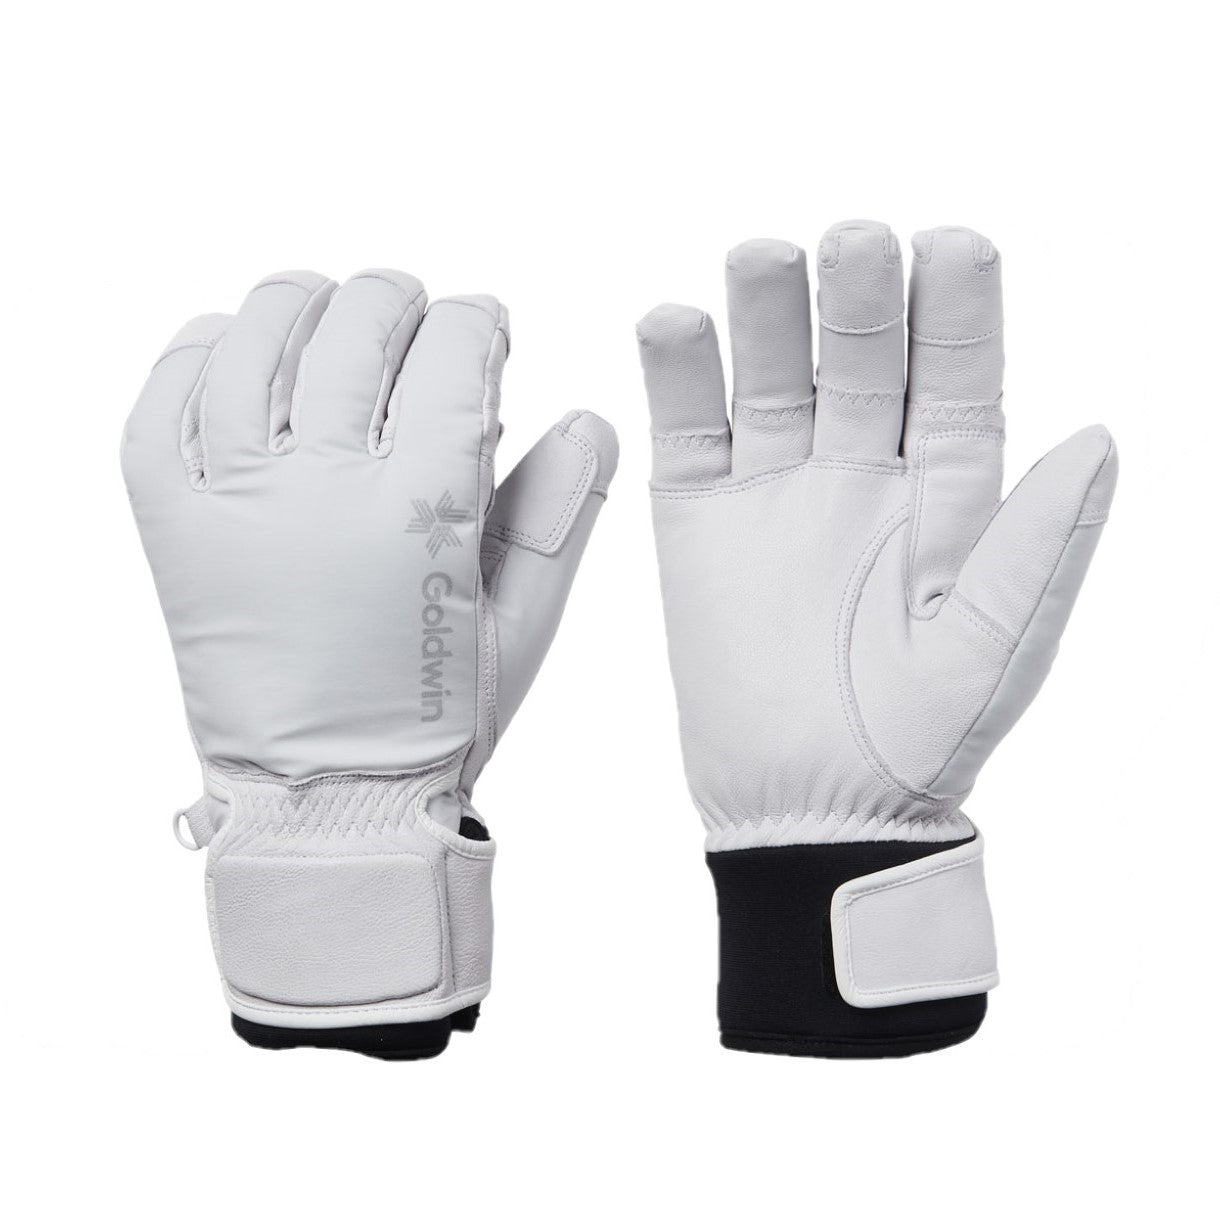 Men's Flex Gloves